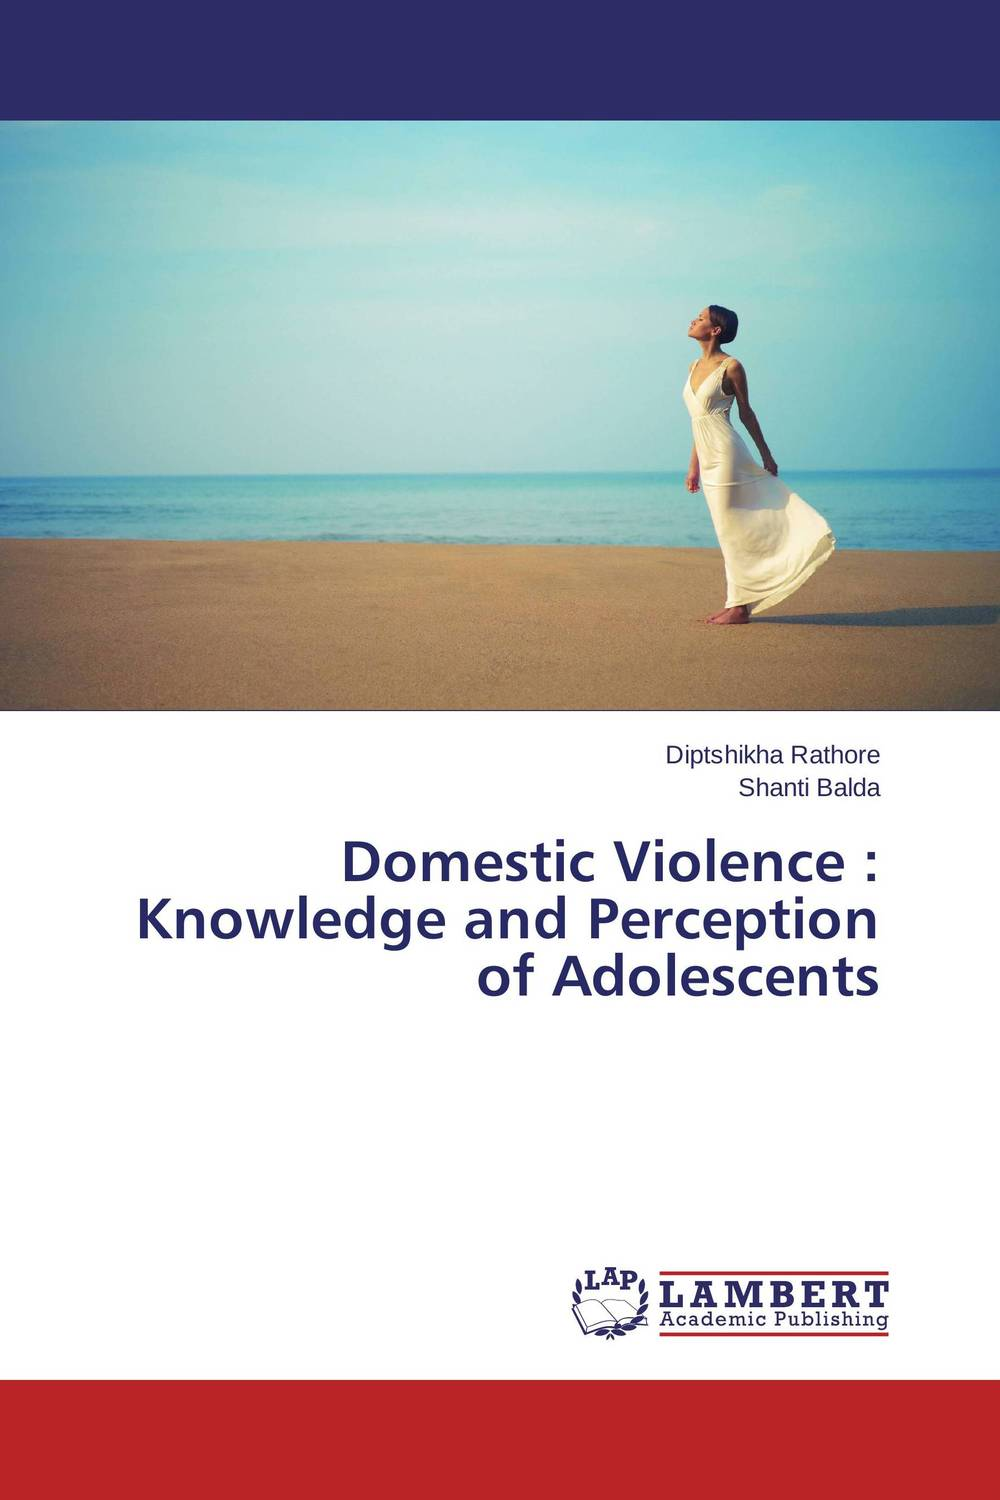 Domestic Violence : Knowledge and Perception of Adolescents tv addiction and personality styles of adolescents